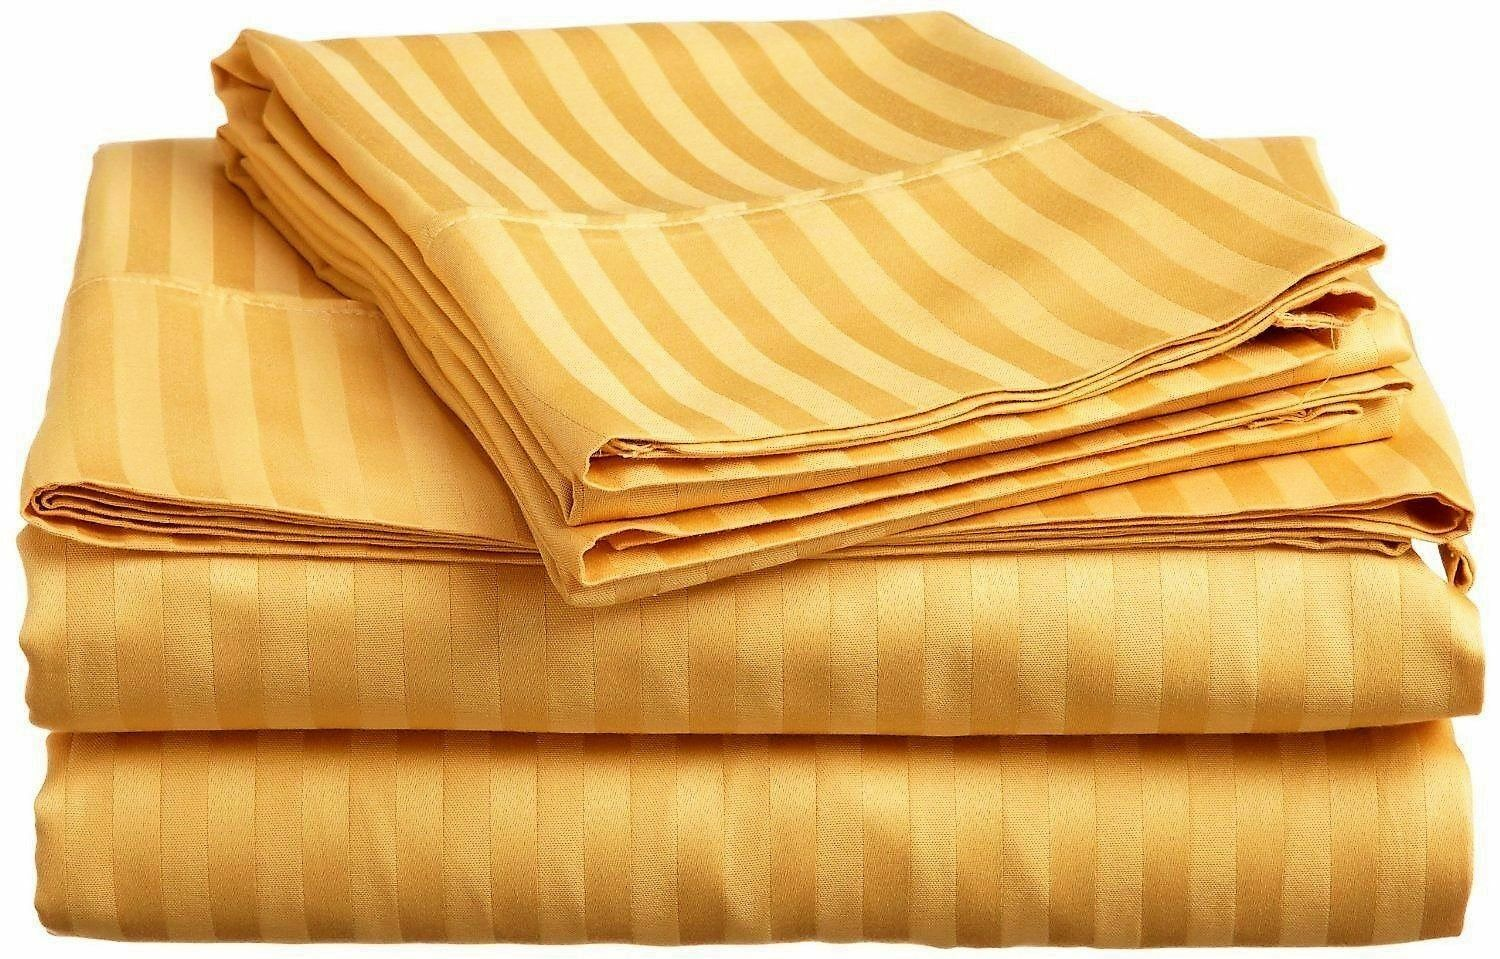 US 6 PC Sheet Set gold Striped Select Size 1000 Thread Count Egyptian Cotton